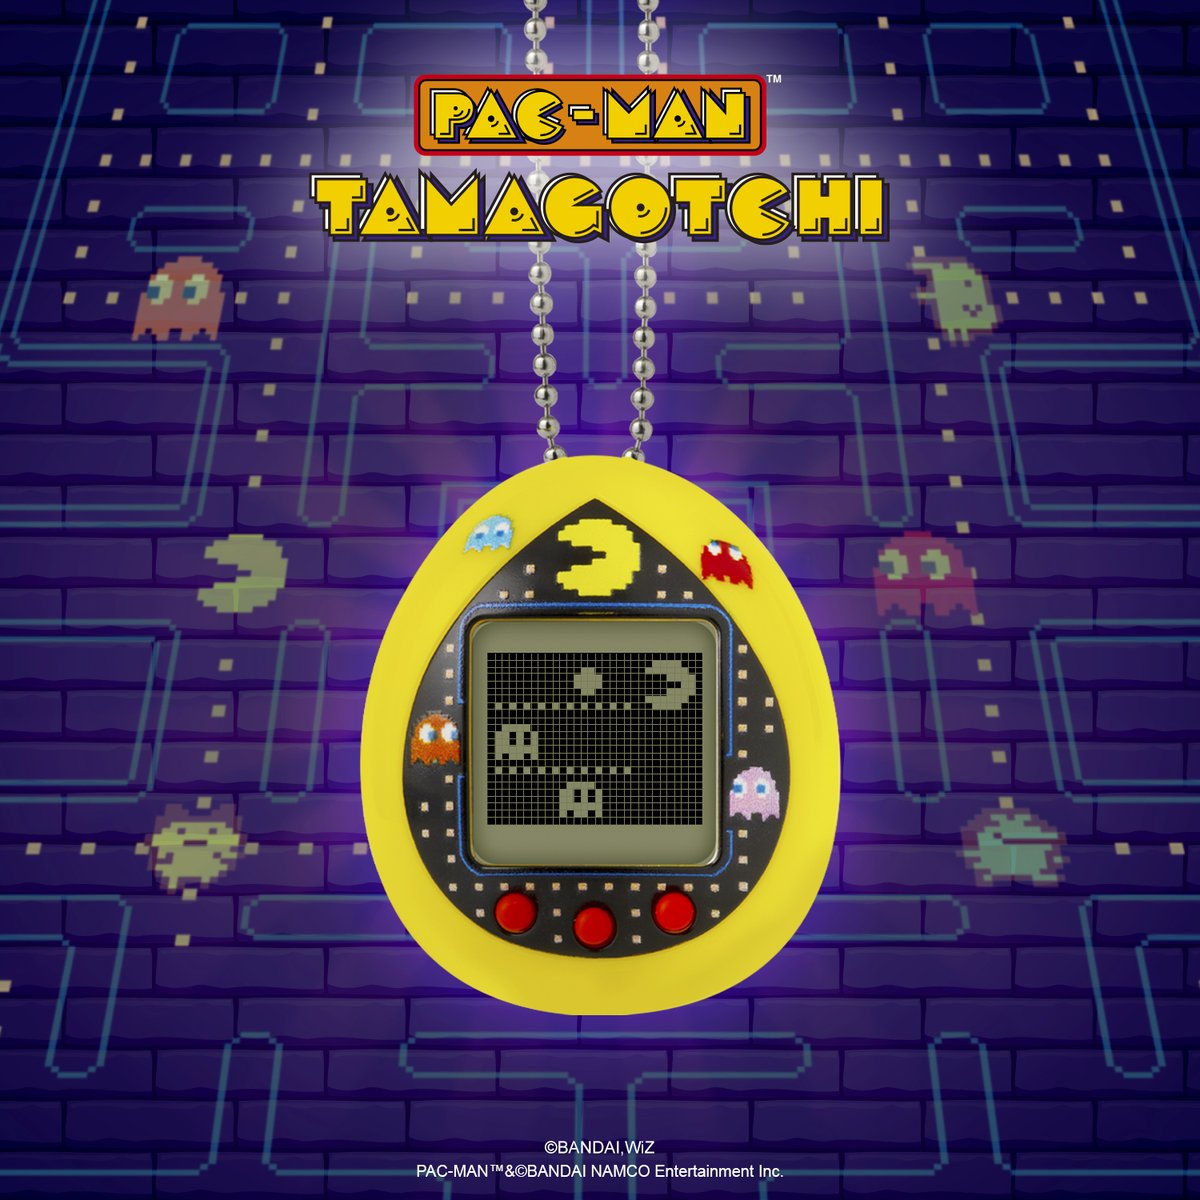 Our cherry-eating, ghost-catching, waka waka noise-making friend is the ultimate addition to the Tamagotchi! 🍒  @officialpacman    #PACMANTamagotchi #PACMAN40th https://t.co/9m7FuefHgm